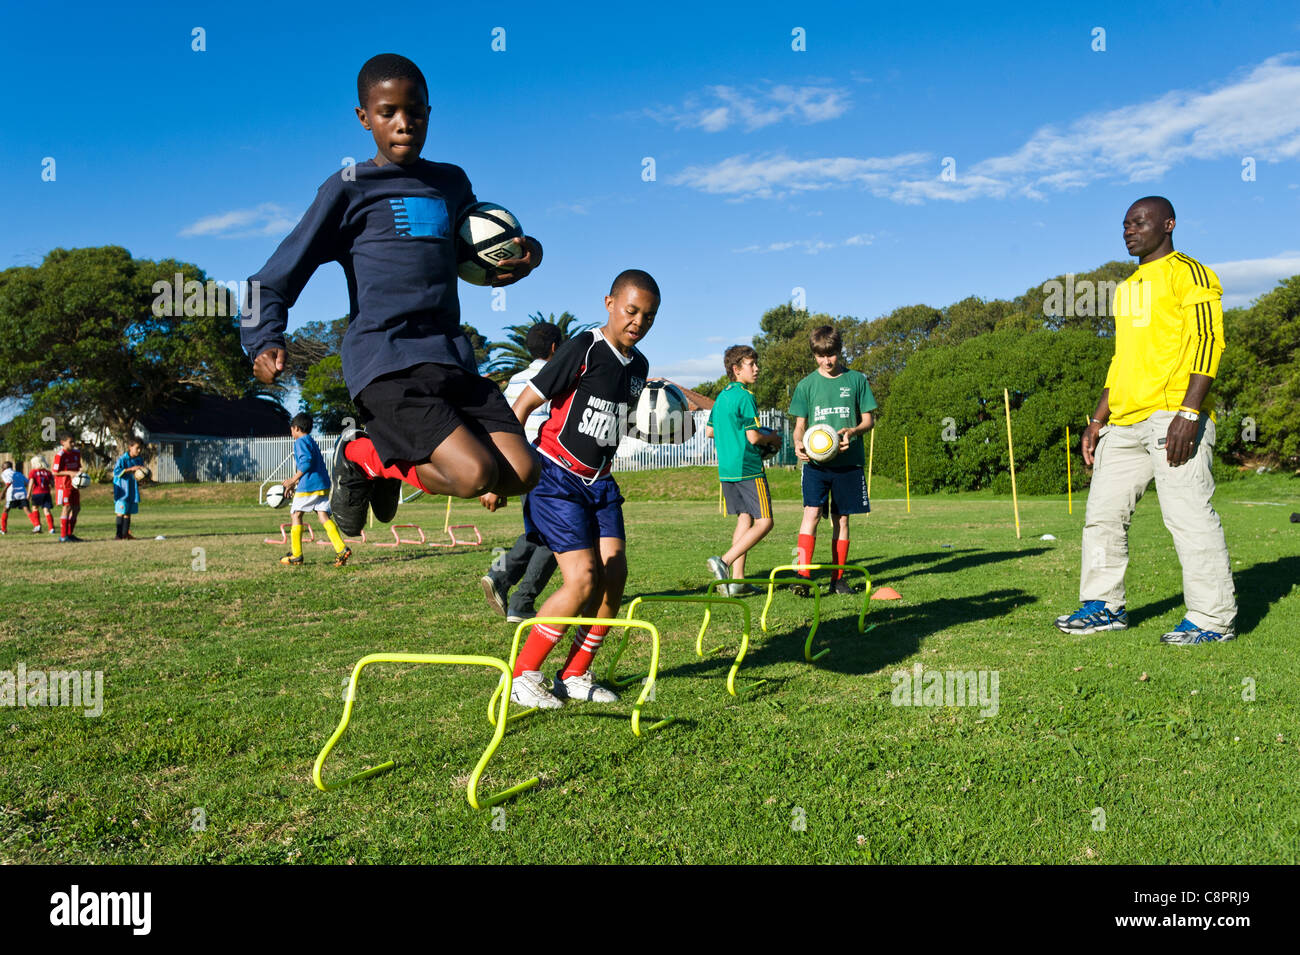 Football coach watching junior players practicing skills Cape Town South Africa - Stock Image